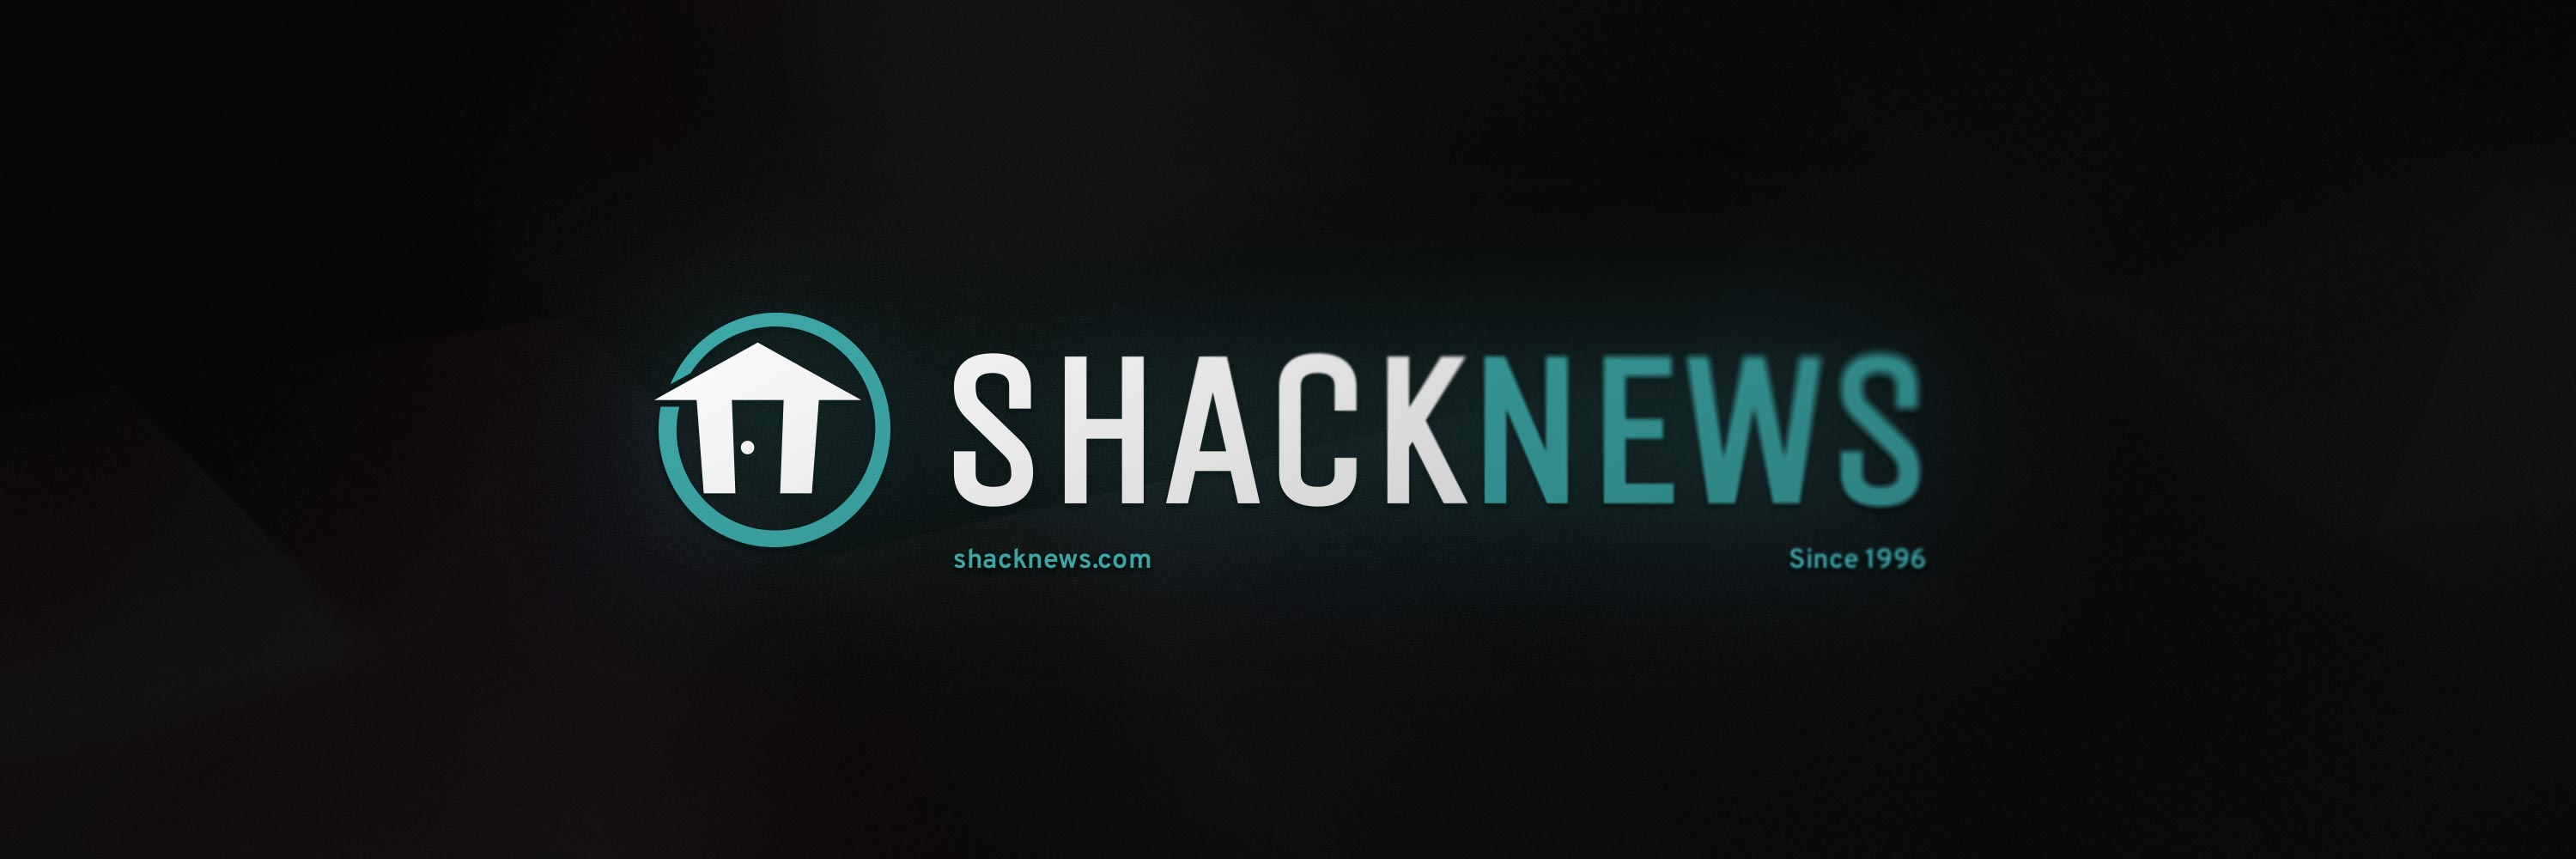 It's almost time to do it for Shacknews again.